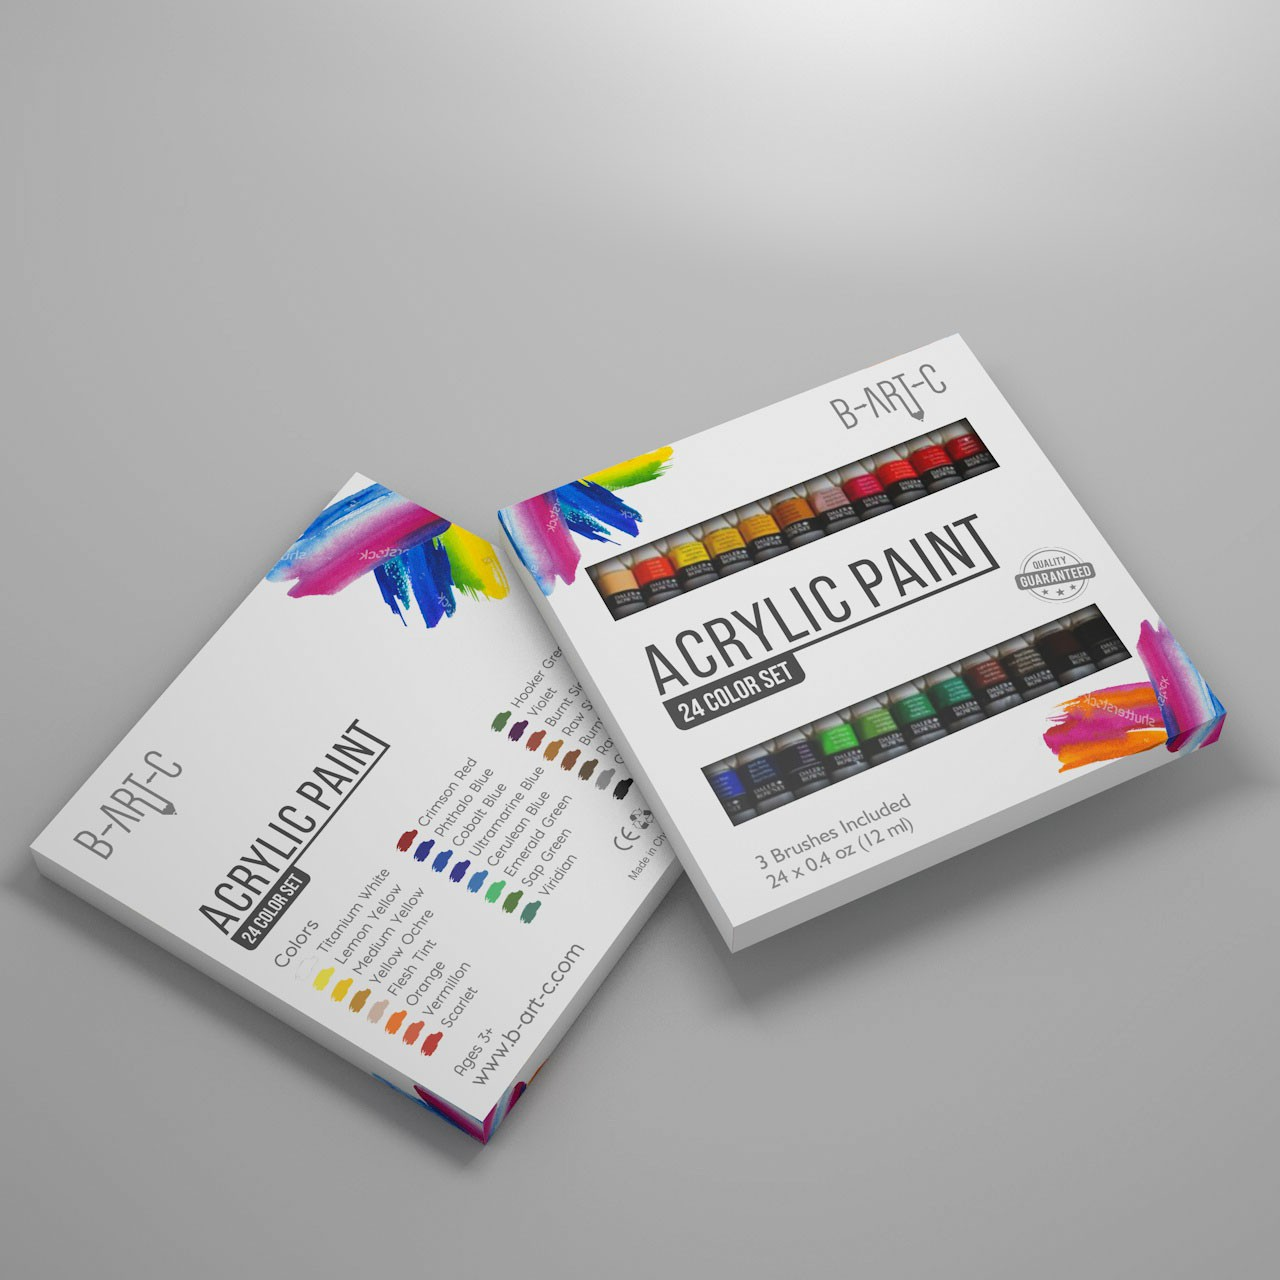 Acrylic Paint Set Package Design - Let's get creative, people!